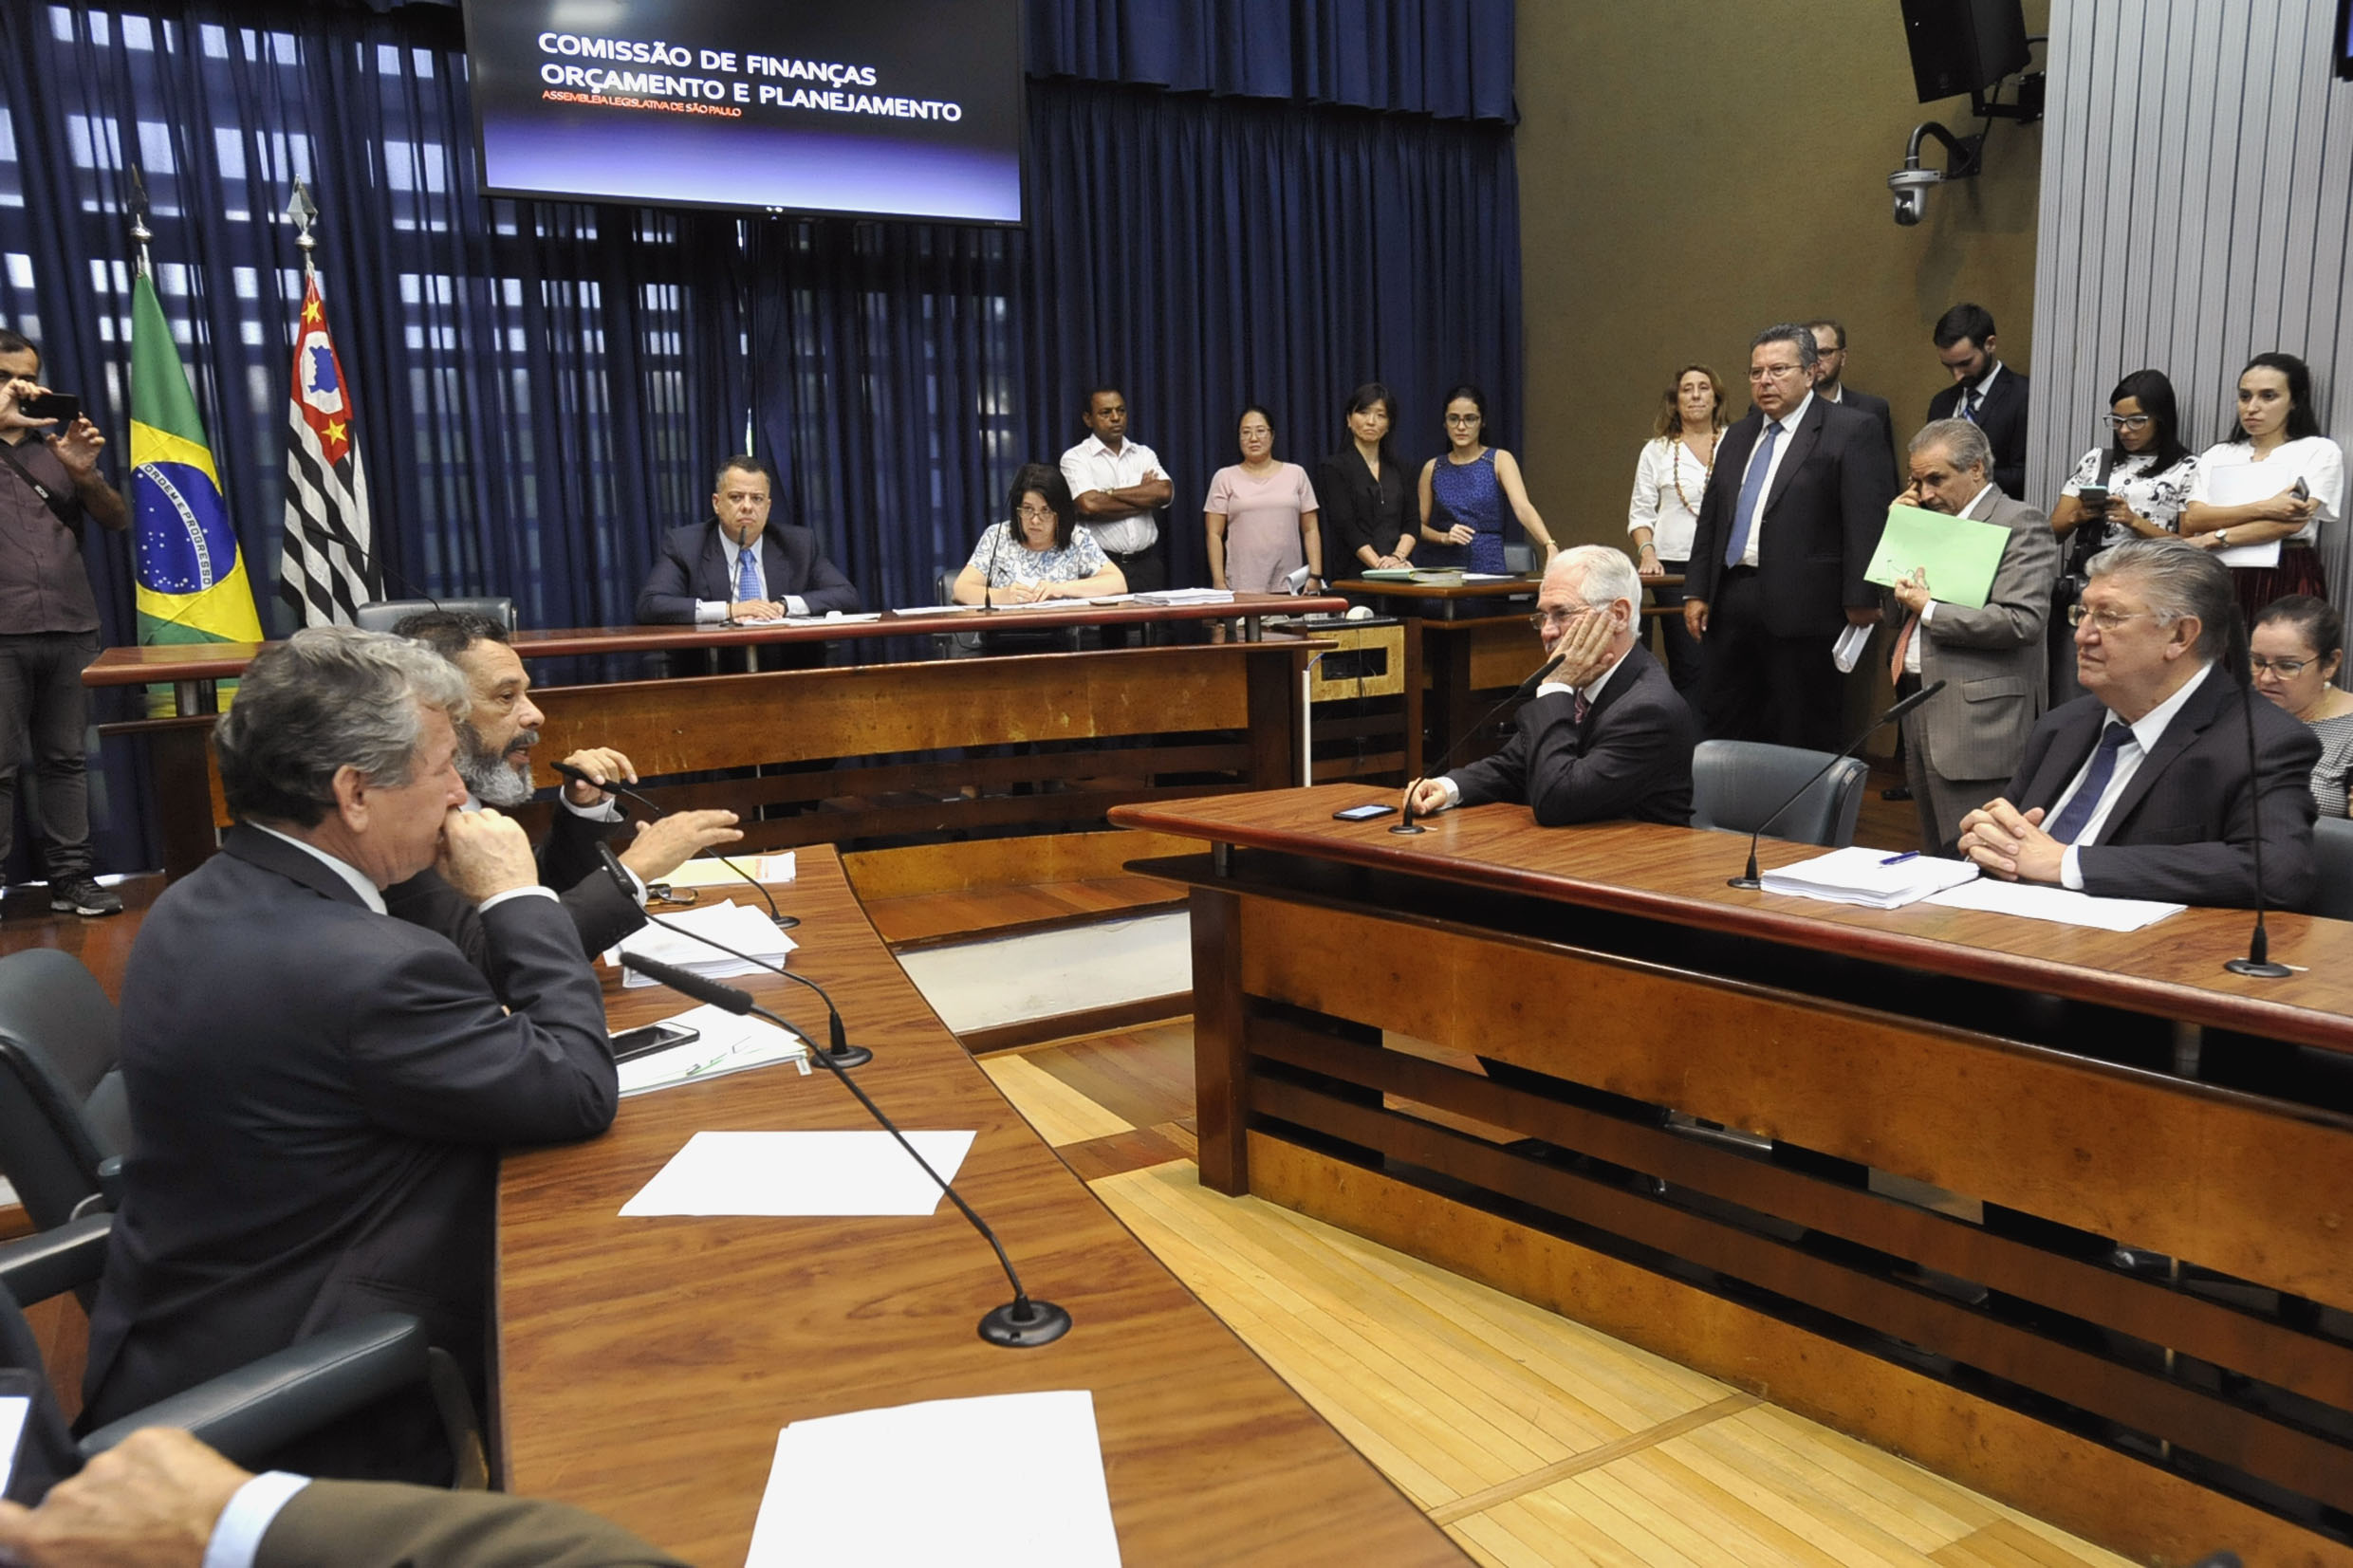 Parlamentares na comissão <a style='float:right' href='https://www3.al.sp.gov.br/repositorio/noticia/N-12-2018/fg228741.jpg' target=_blank><img src='/_img/material-file-download-white.png' width='14px' alt='Clique para baixar a imagem'></a>